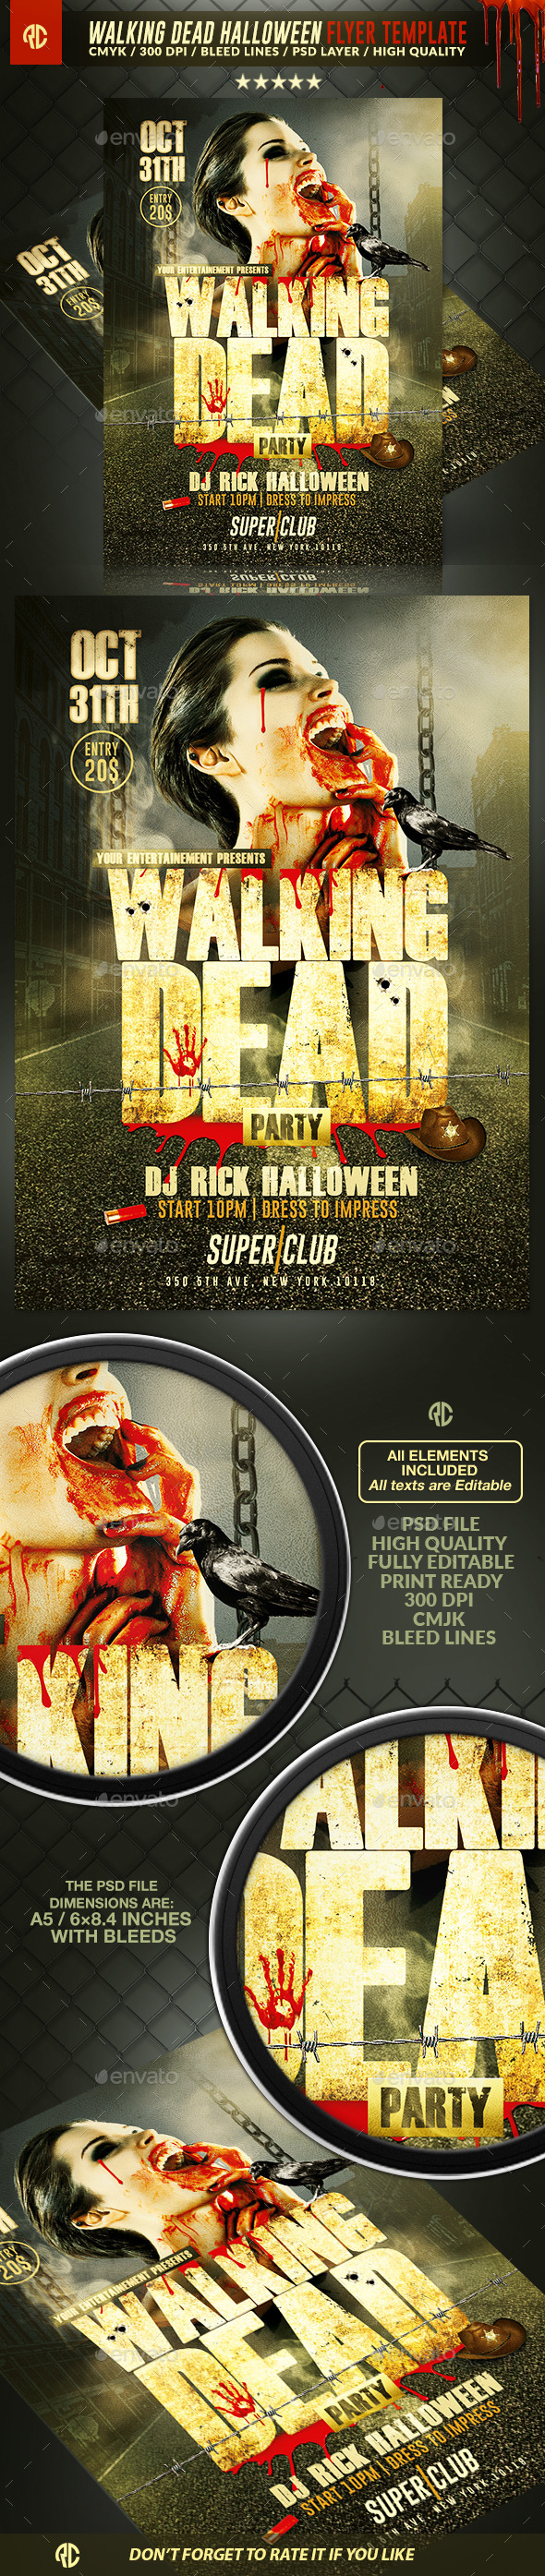 Walking Dead Halloween | Flyer Template - Events Flyers